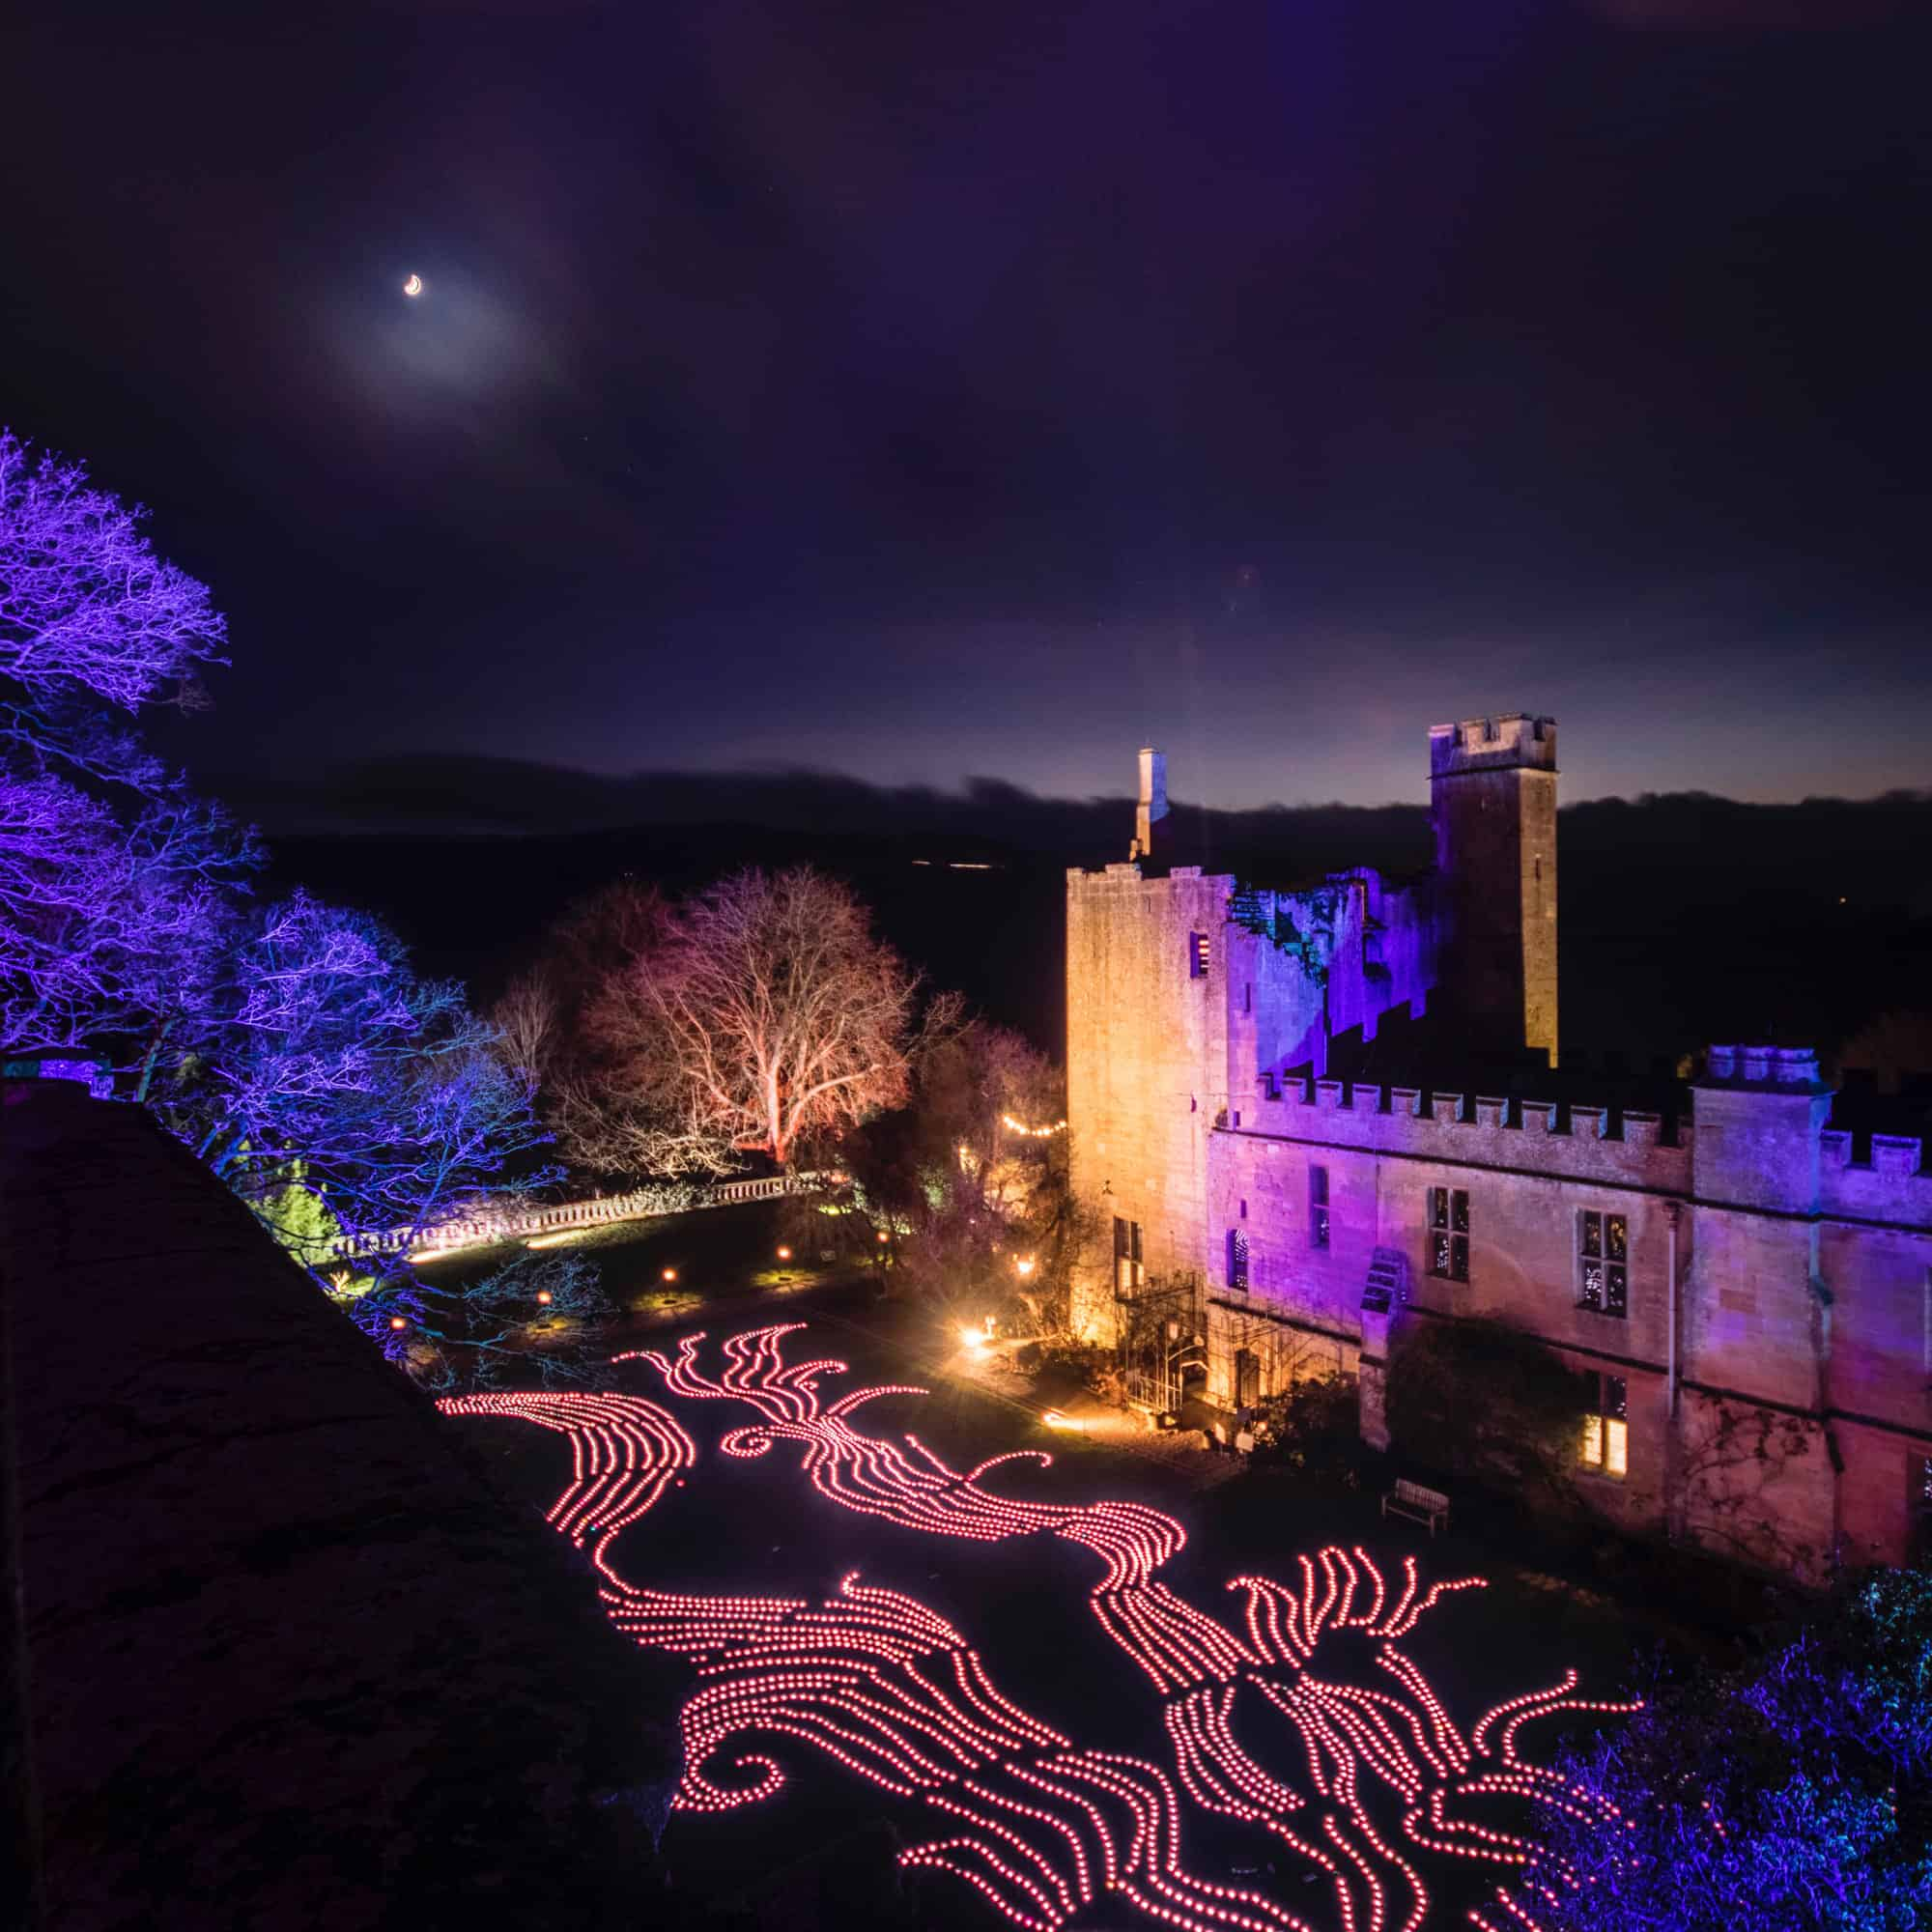 2017 Sudeley Castle Spectacle of Light Photo Gallery 5